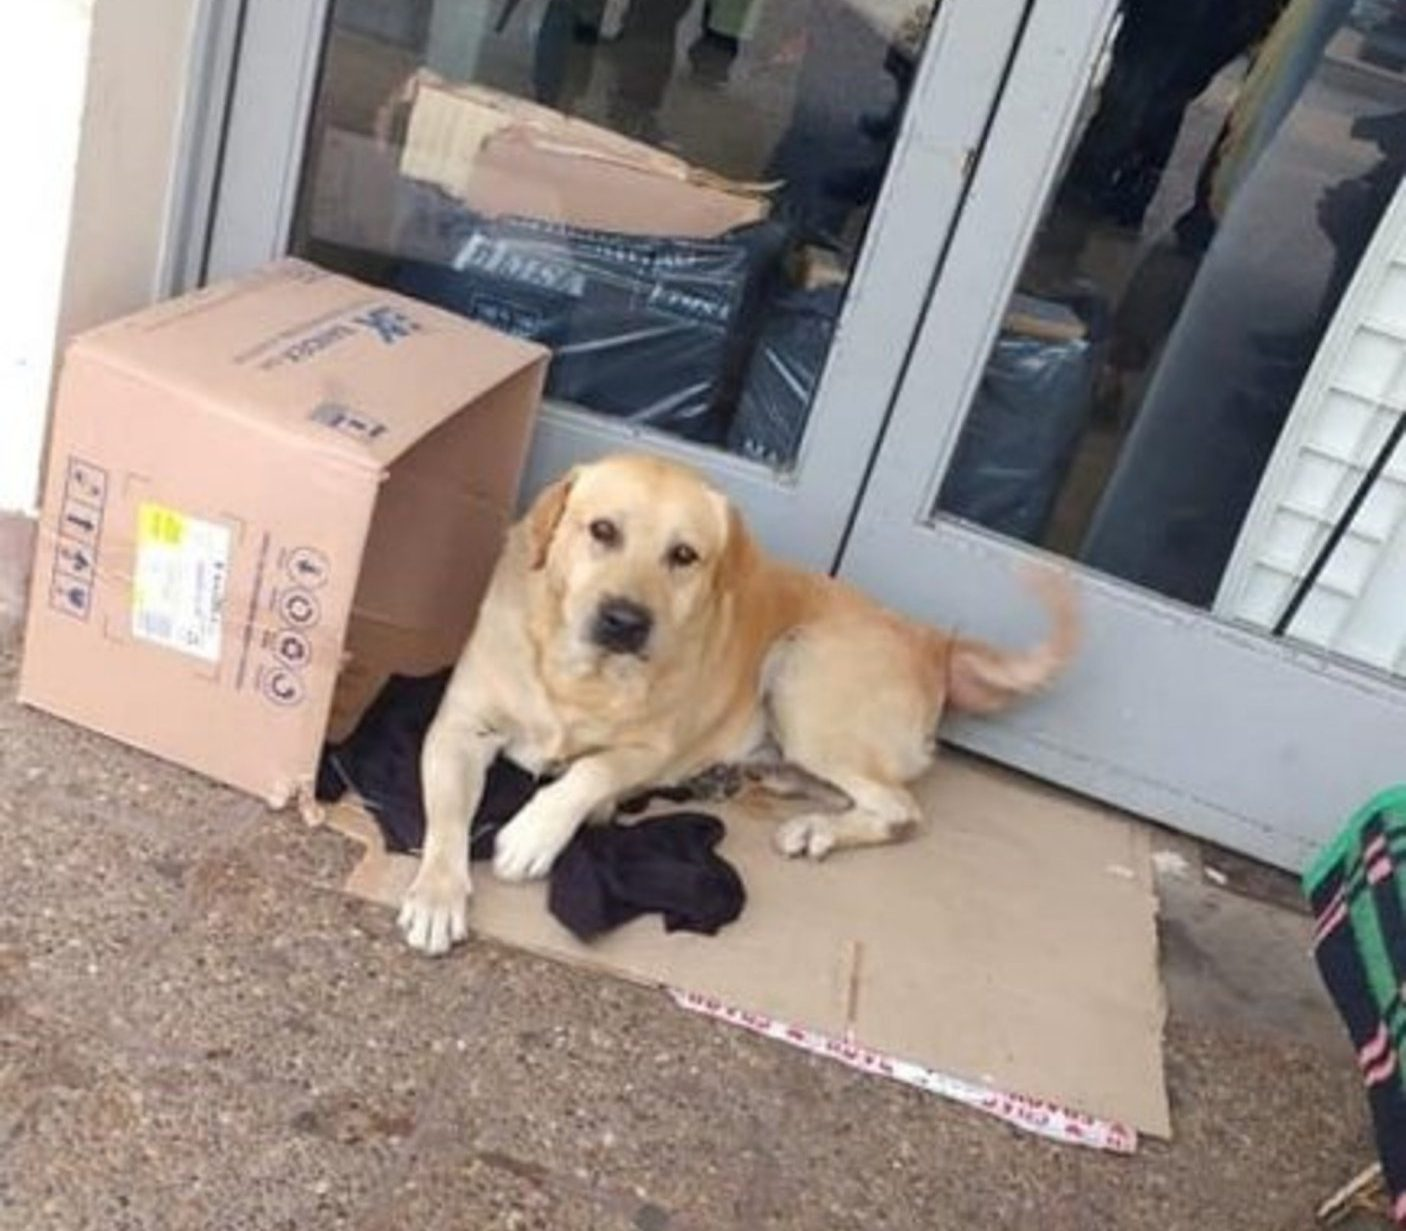 Pic shows: The dog is waiting outside the hospital. ARGENTINA: This loyal dog has been waiting at the entrance to a hospital for over a week for its owner who died inside.